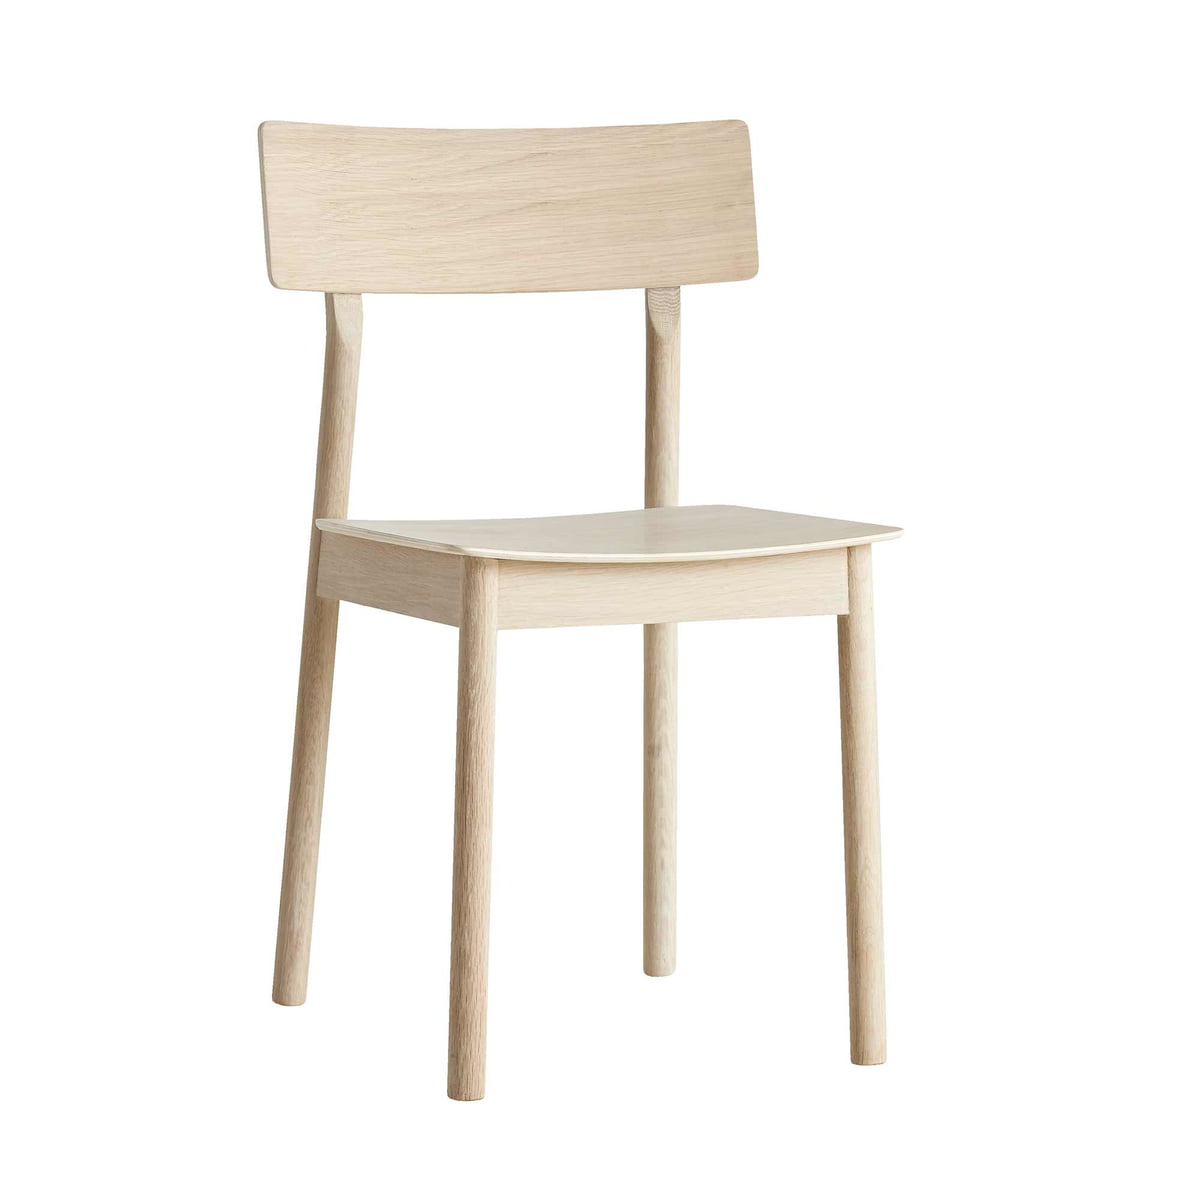 Pause Dining Chair by Woud in the shop